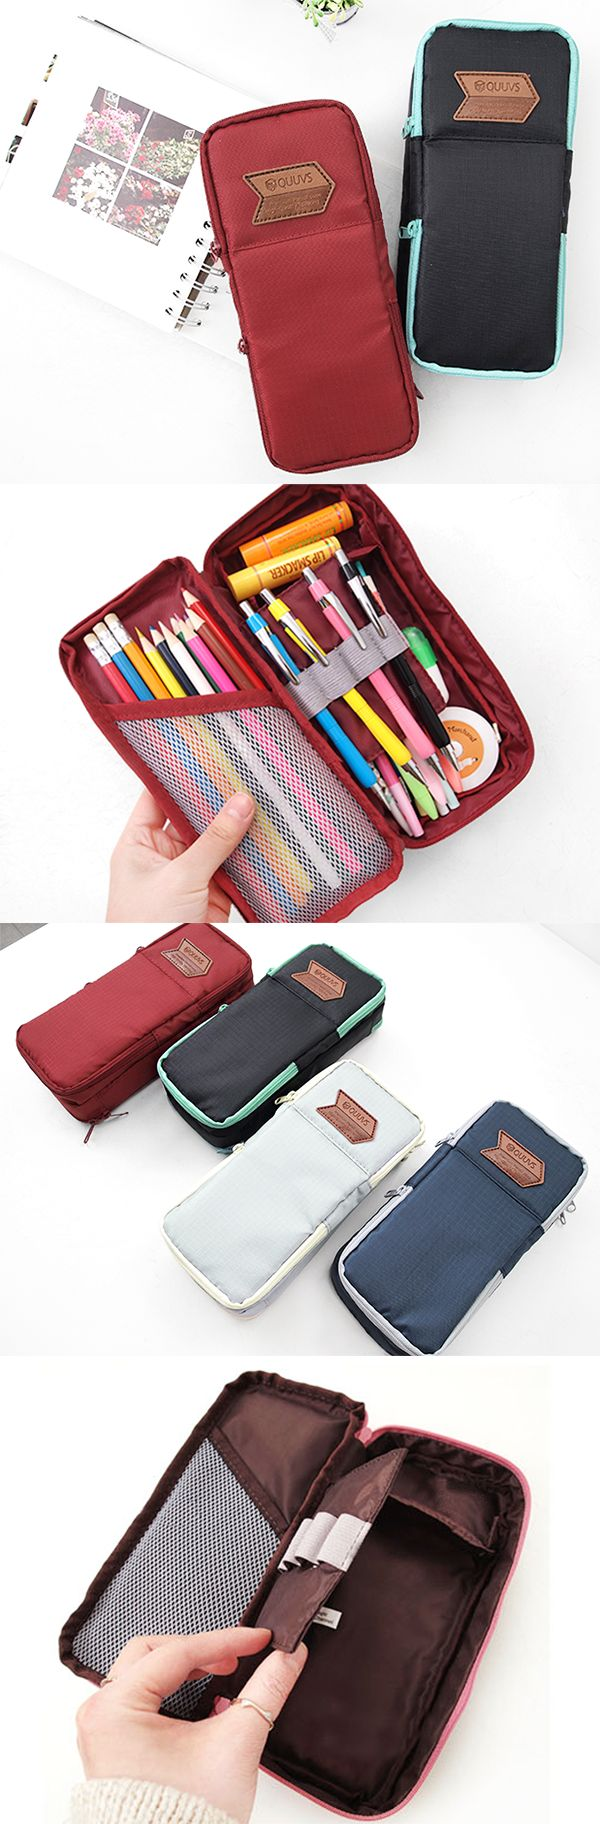 Tired of losing your pencils? Meet the QUUVS Pencil Pouch! This modern pouch has 2 sections for optimal organization. The top part has 2 zippered pockets, 1 for small items like your USB drive or earbuds & the other for your cash, cards, & memos. The bottom part has a mesh pocket to hold your colored pencils & a divider with a band to showcase your favorite pens & pencils. Under that, there are 2 sections with plenty room to organize other supplies such as erasers, tape, & more! Check it…